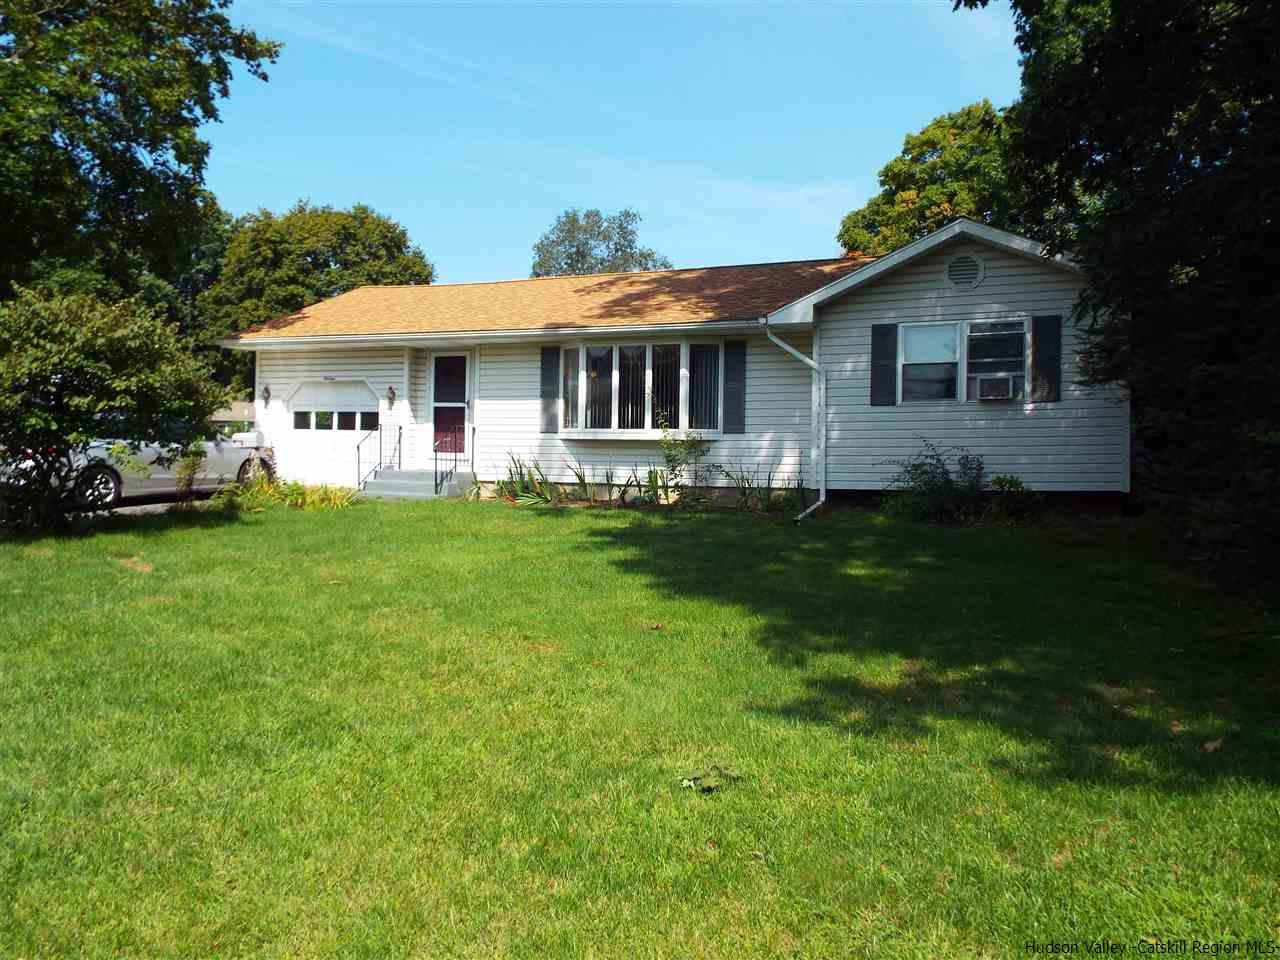 Single Family Home for Sale at 16 EDITH Avenue 16 EDITH Avenue Saugerties, New York 12477 United States